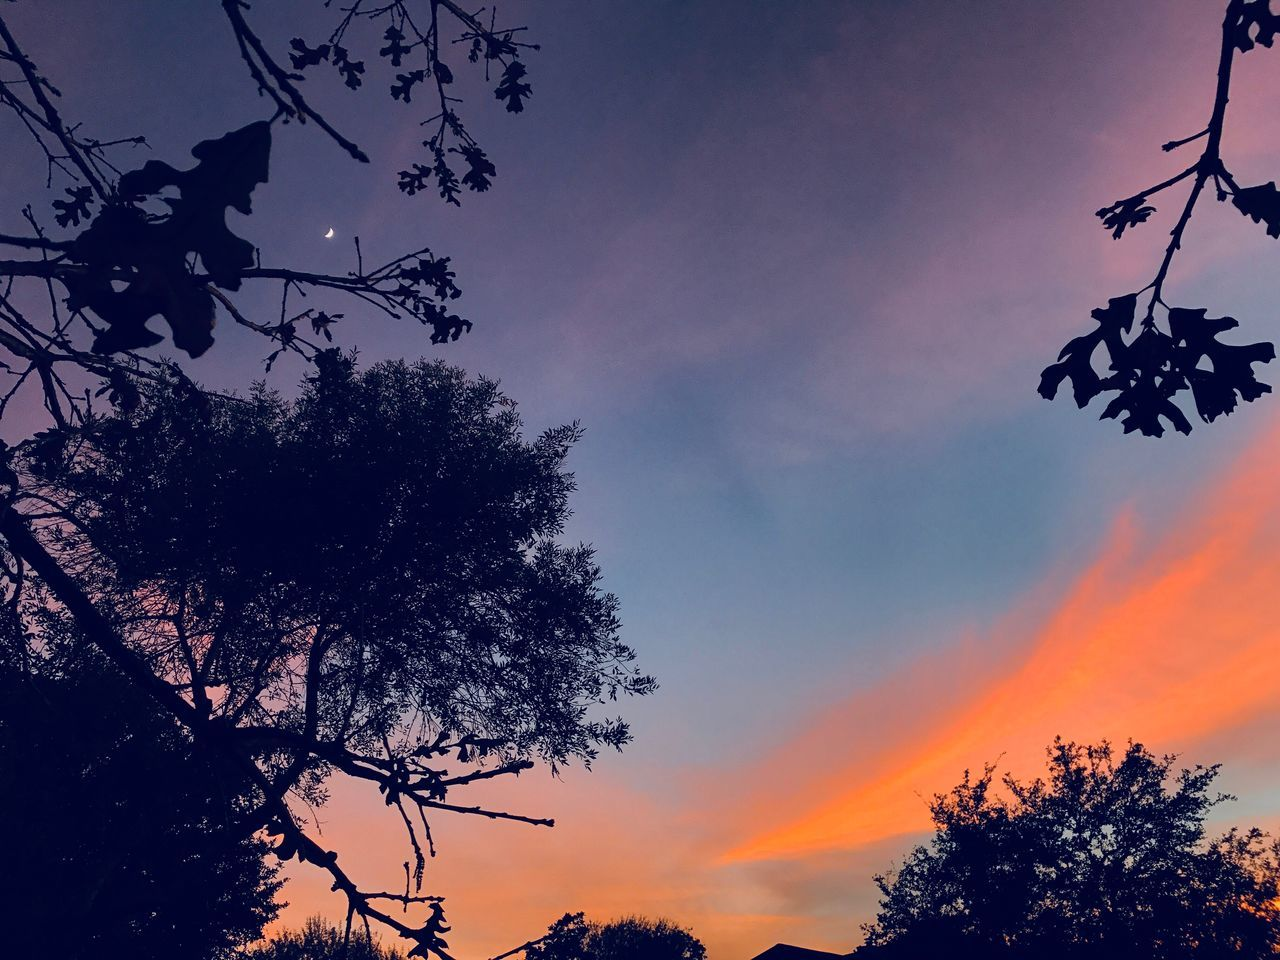 tree, silhouette, sunset, sky, low angle view, nature, beauty in nature, growth, branch, no people, outdoors, scenics, day